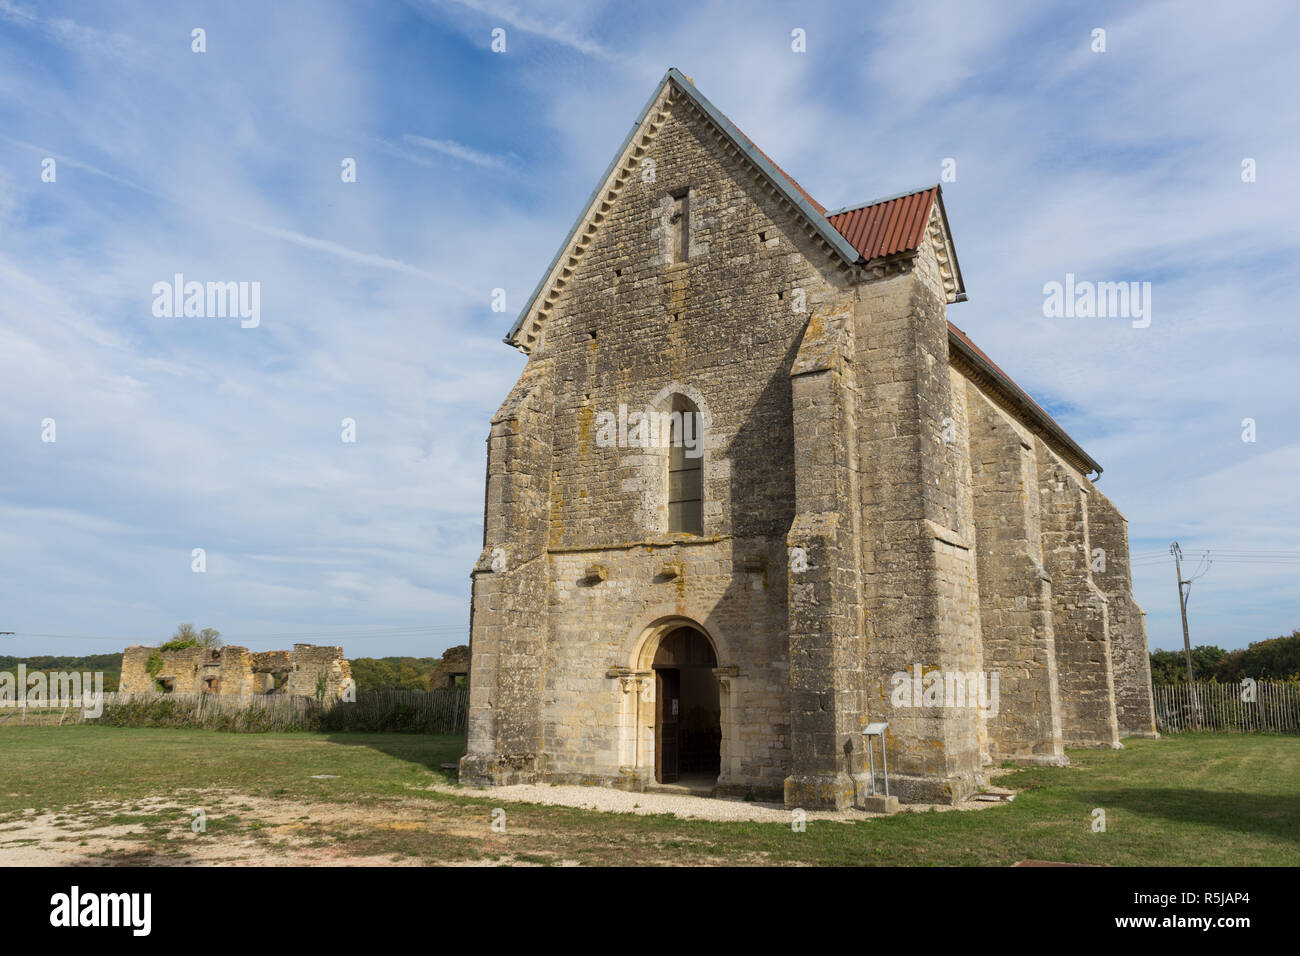 Templar church in Avalleur near Bar-sur-Seine, Aube, Champagne, France - Stock Image